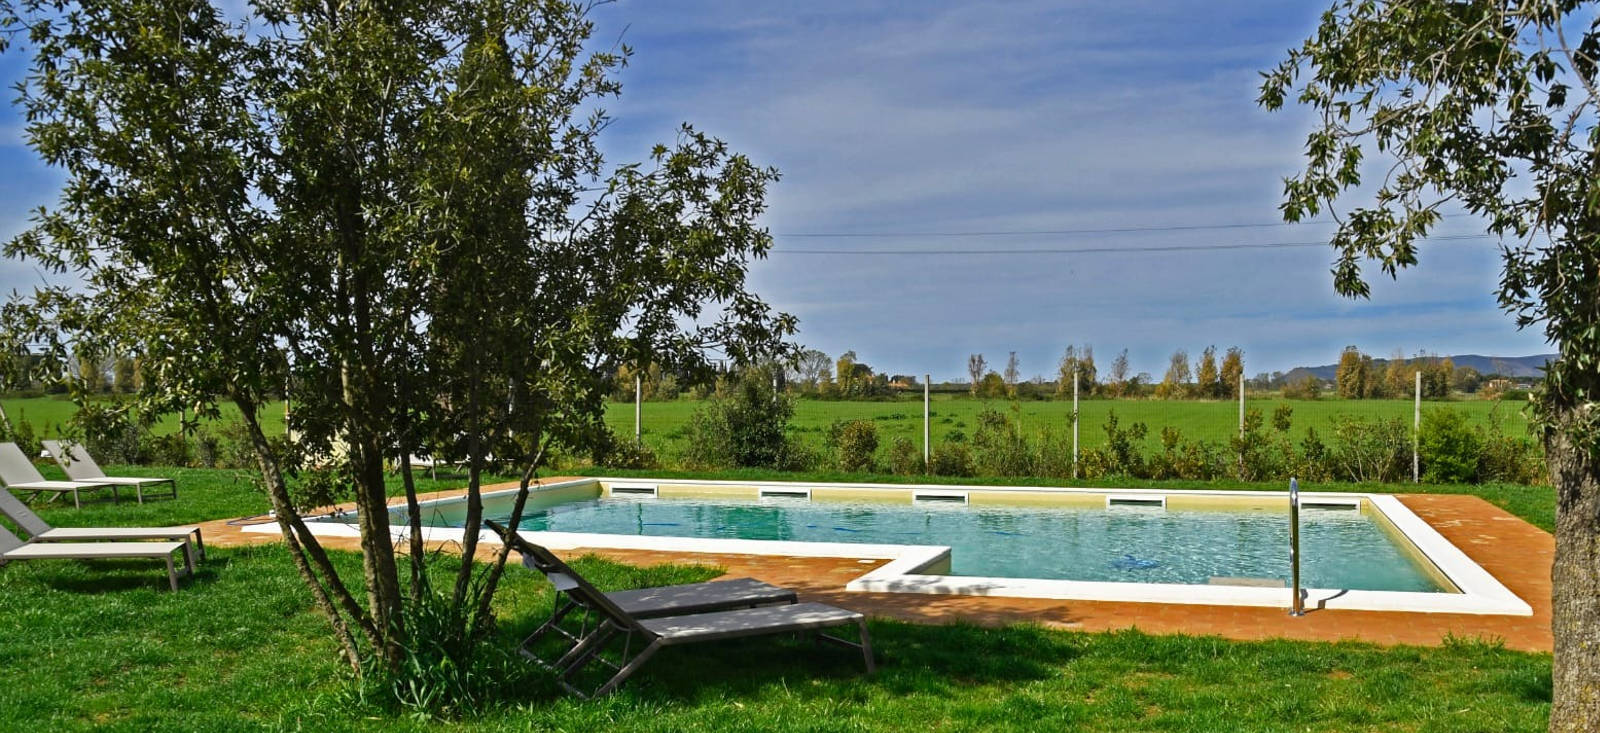 Agriturismo con piscina ad Orbetello